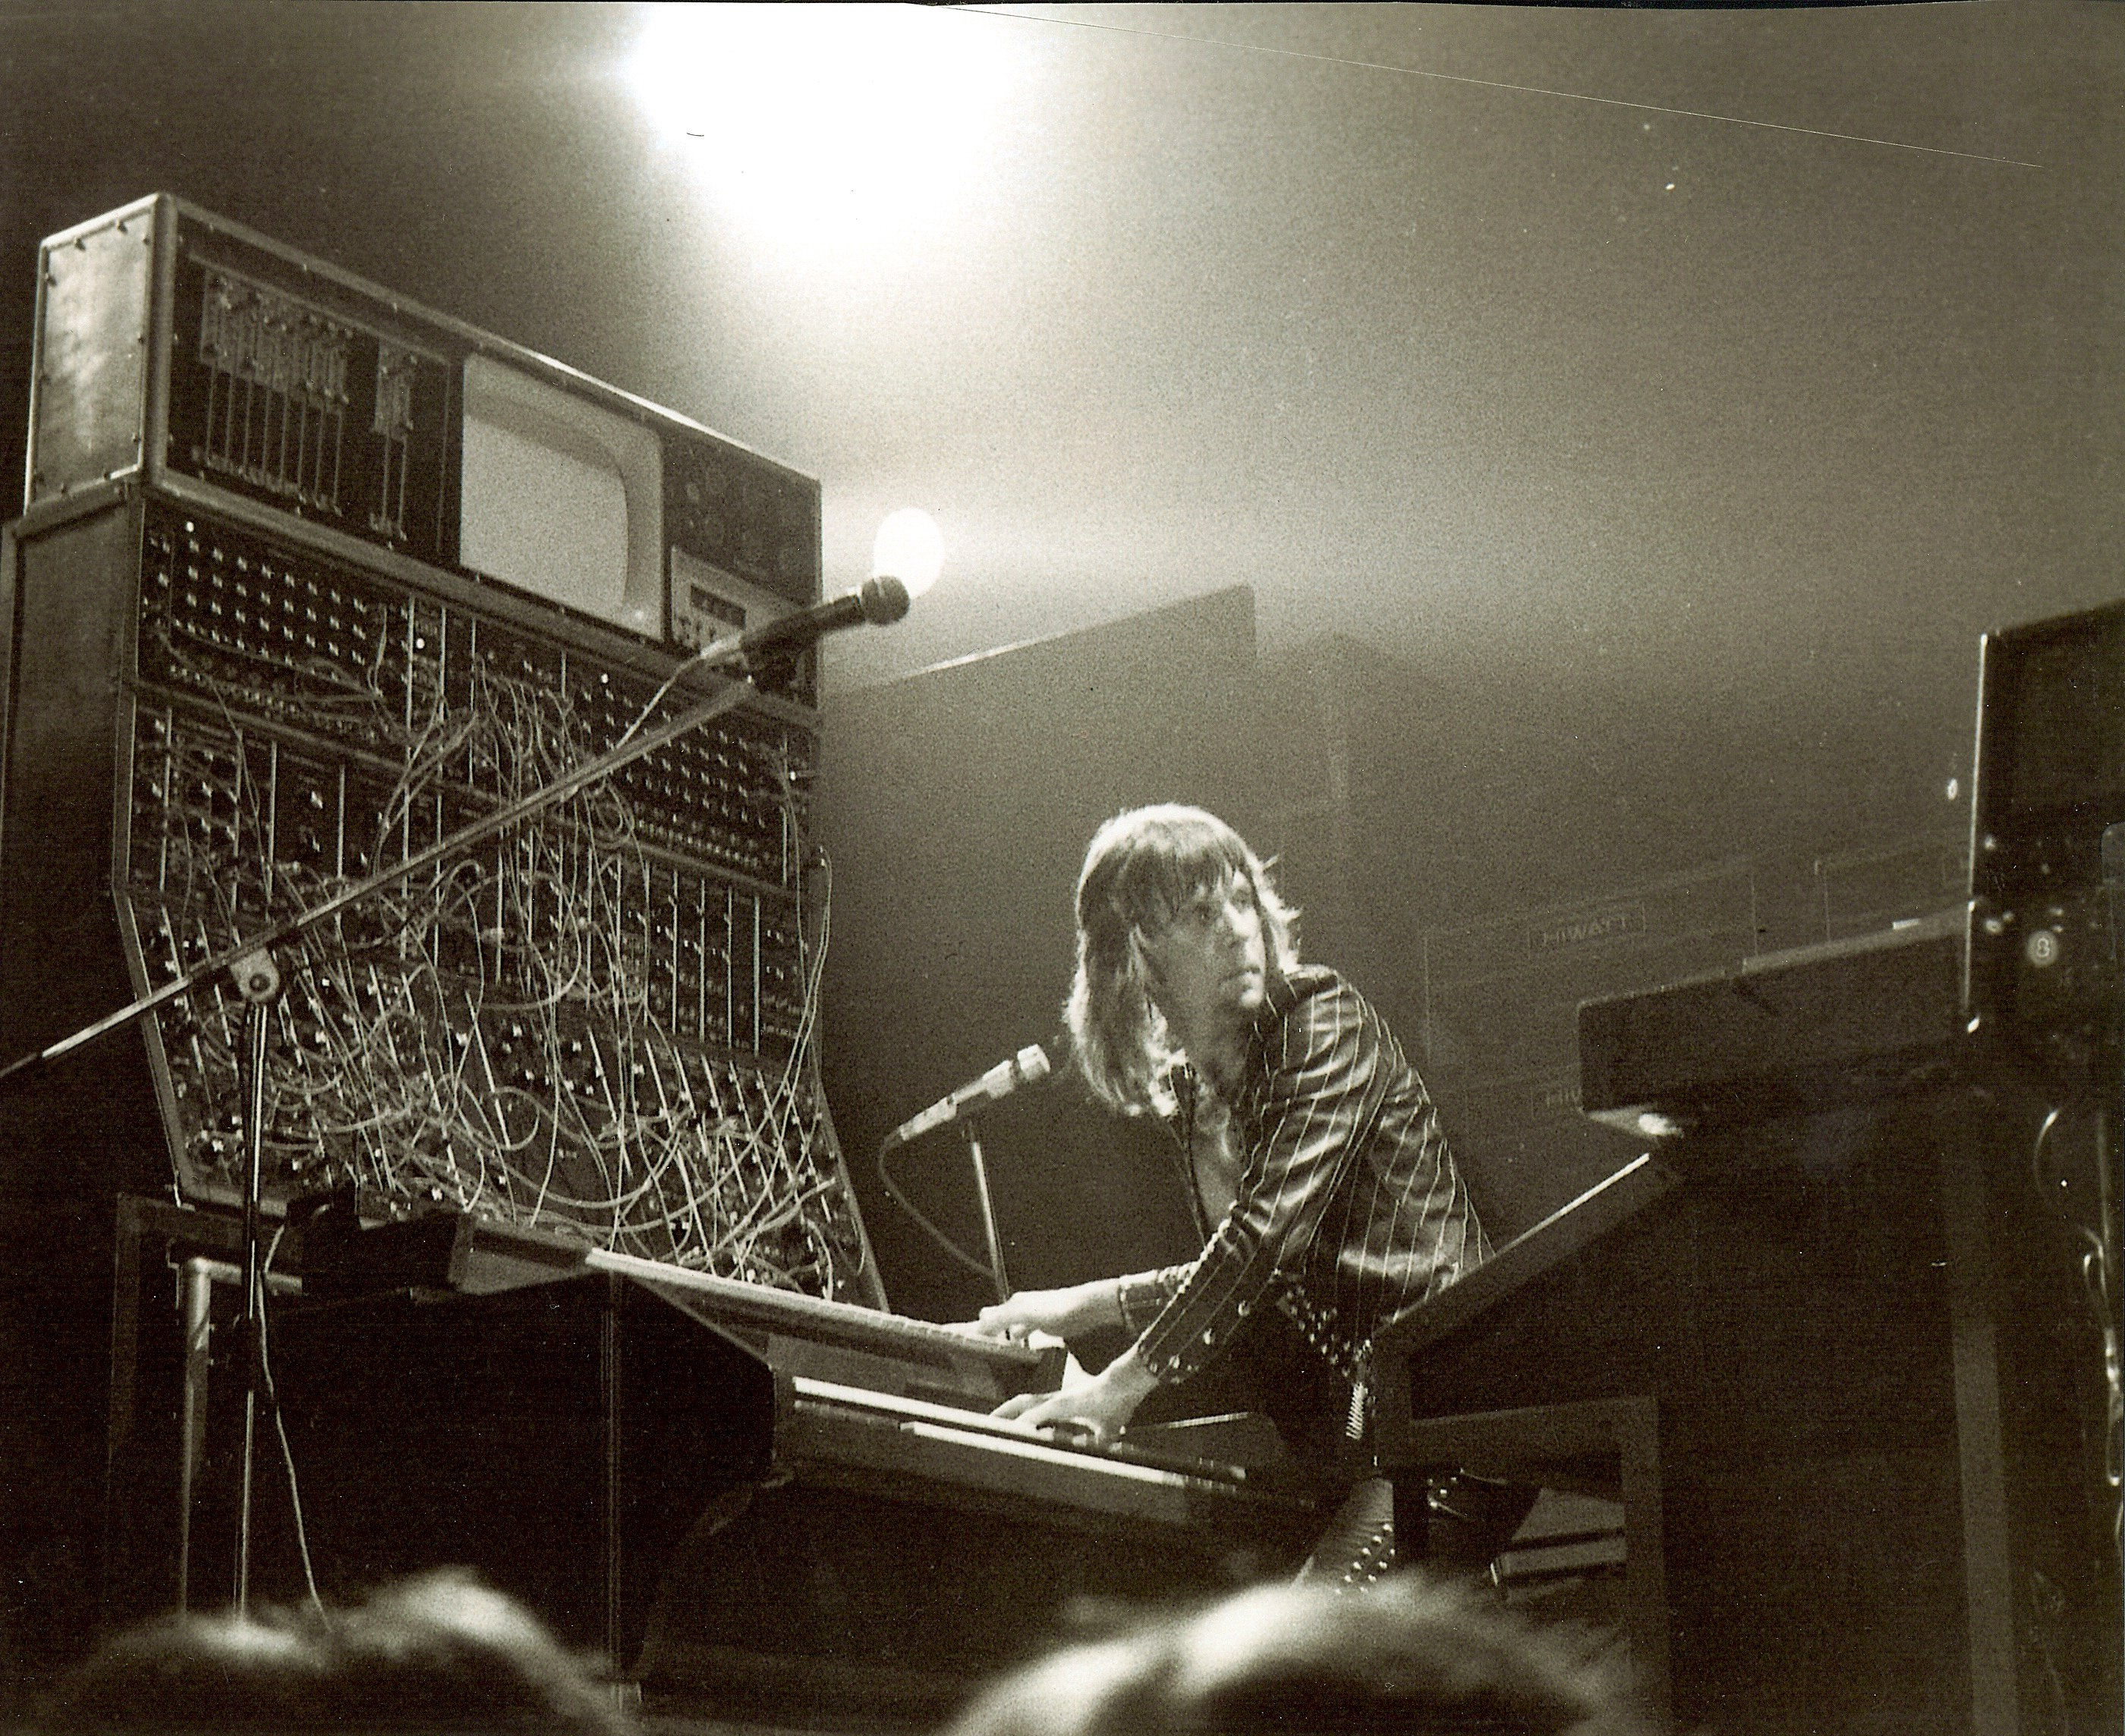 Keith Emerson with an Early Moog Modular System